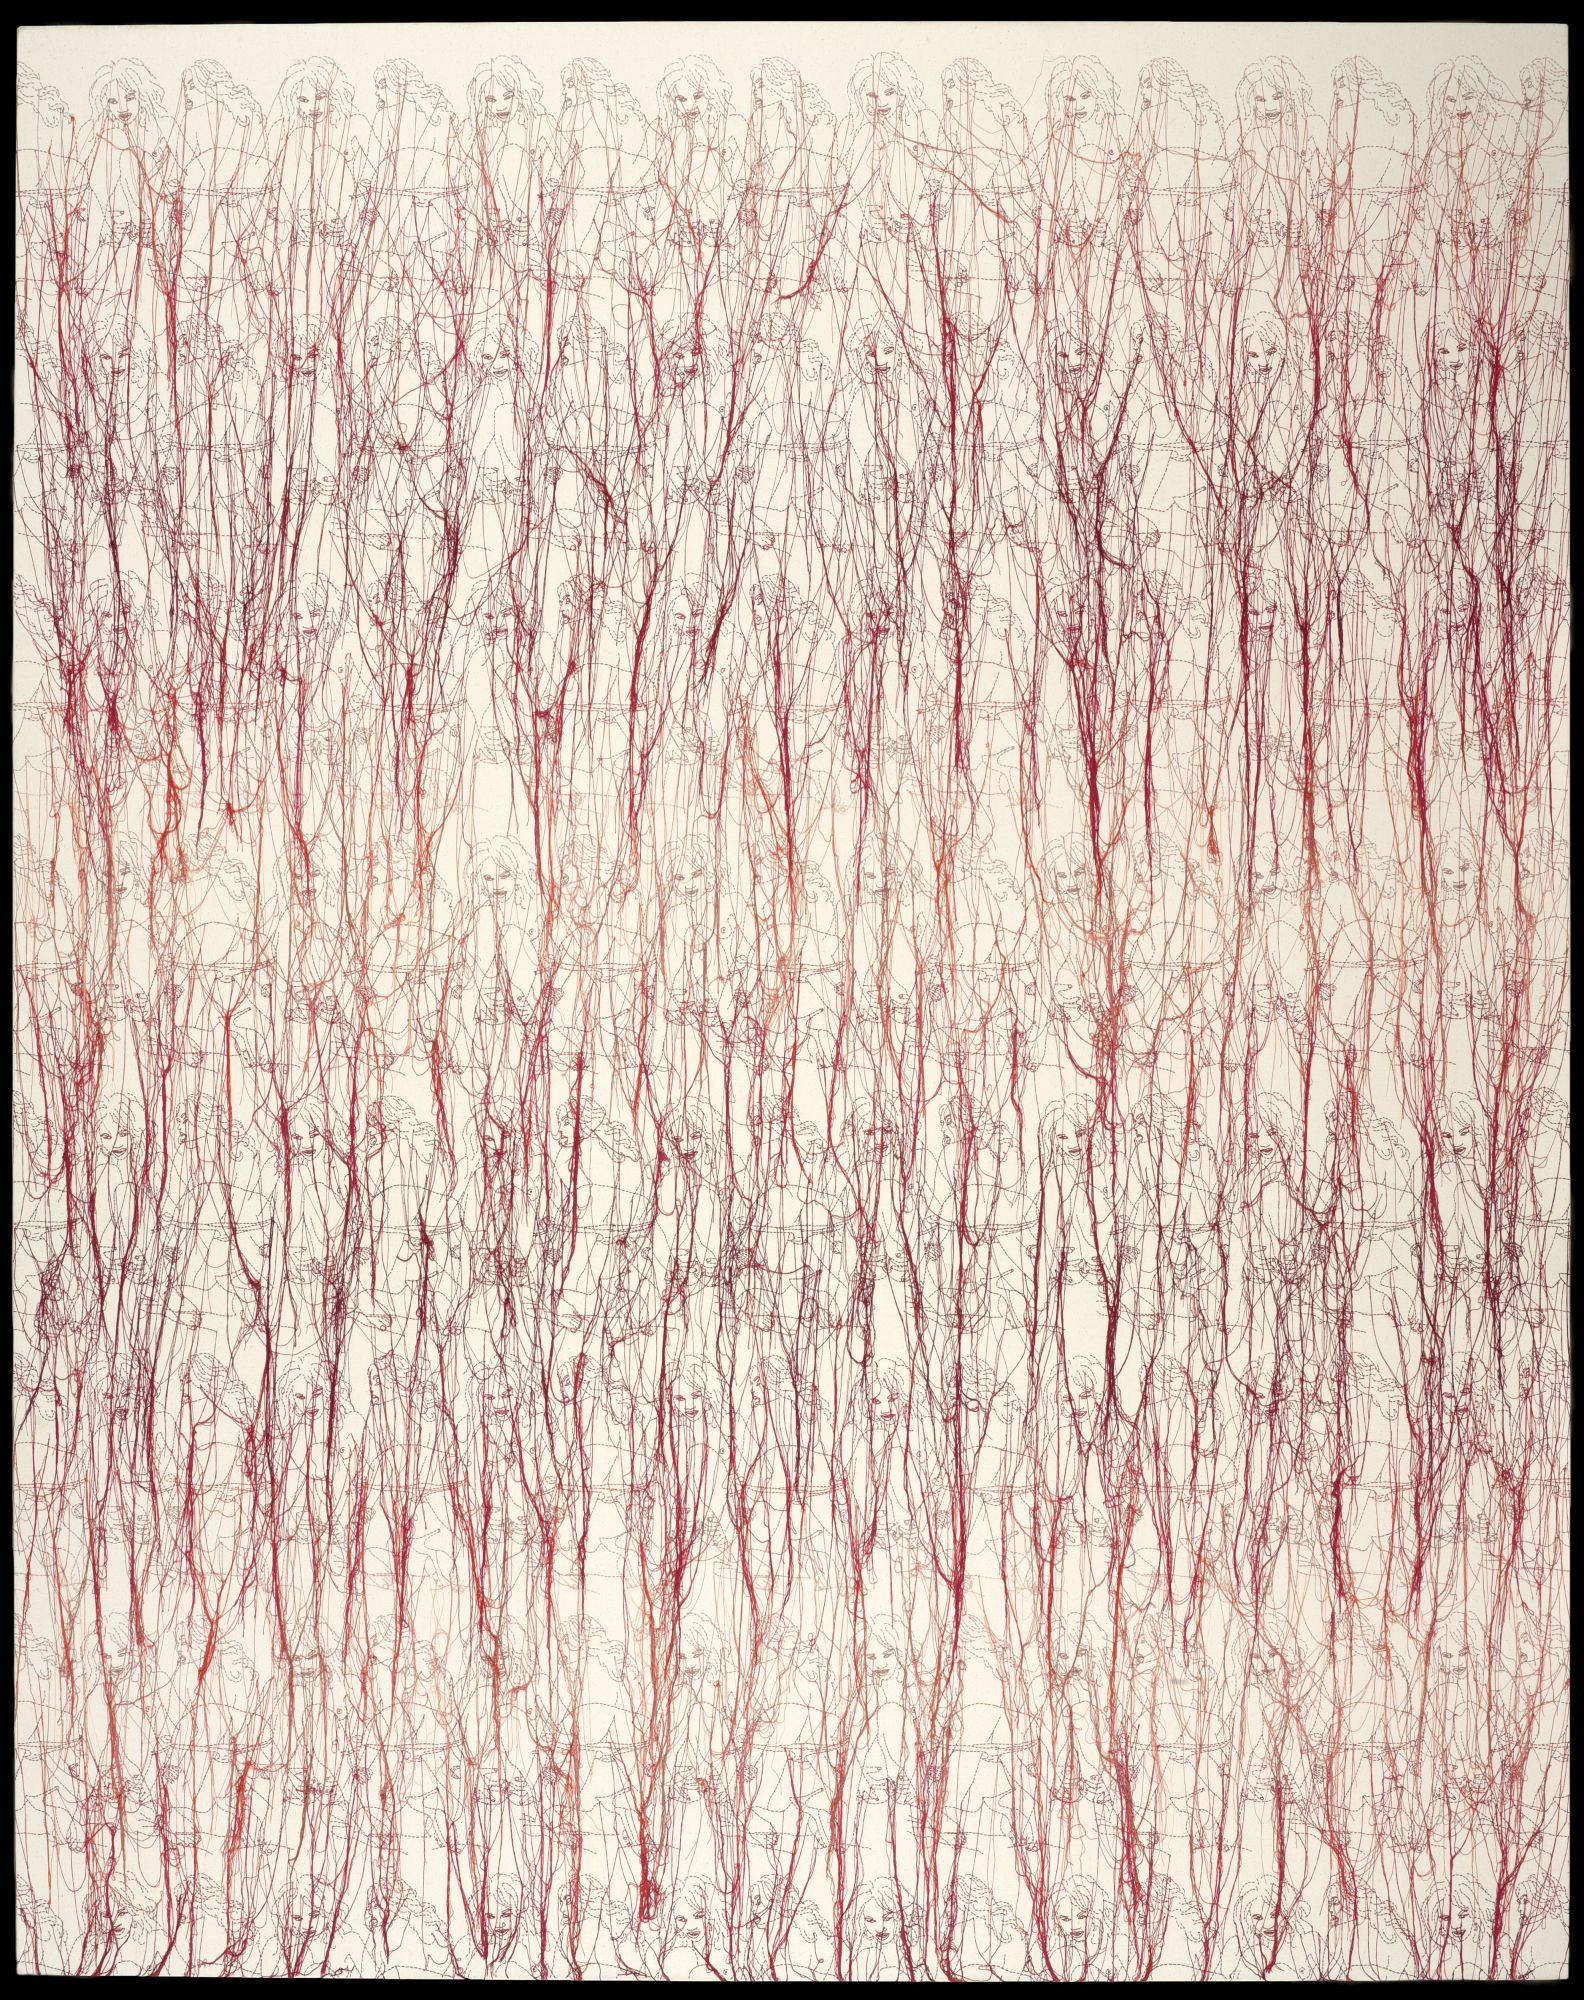 Ghada Amer (born Cairo, Egypt, 1963).  Heather's Dégradé,  2006. Embroidery and gel medium on canvas, 78 x 62 in. (198.1 x 157.5 cm). Brooklyn Museum; Elizabeth A. Sackler Center for Feminist Art, Frank L. Babbott Fund, Mary Smith Dorward Fund, William K. Jacobs, Jr. Fund, and Florence B. and Carl L. Selden Fund, 2013.50.1. © Ghada Amer. Courtesy Cheim & Read, New York. (Photo: Sarah DeSantis, Brooklyn Museum)